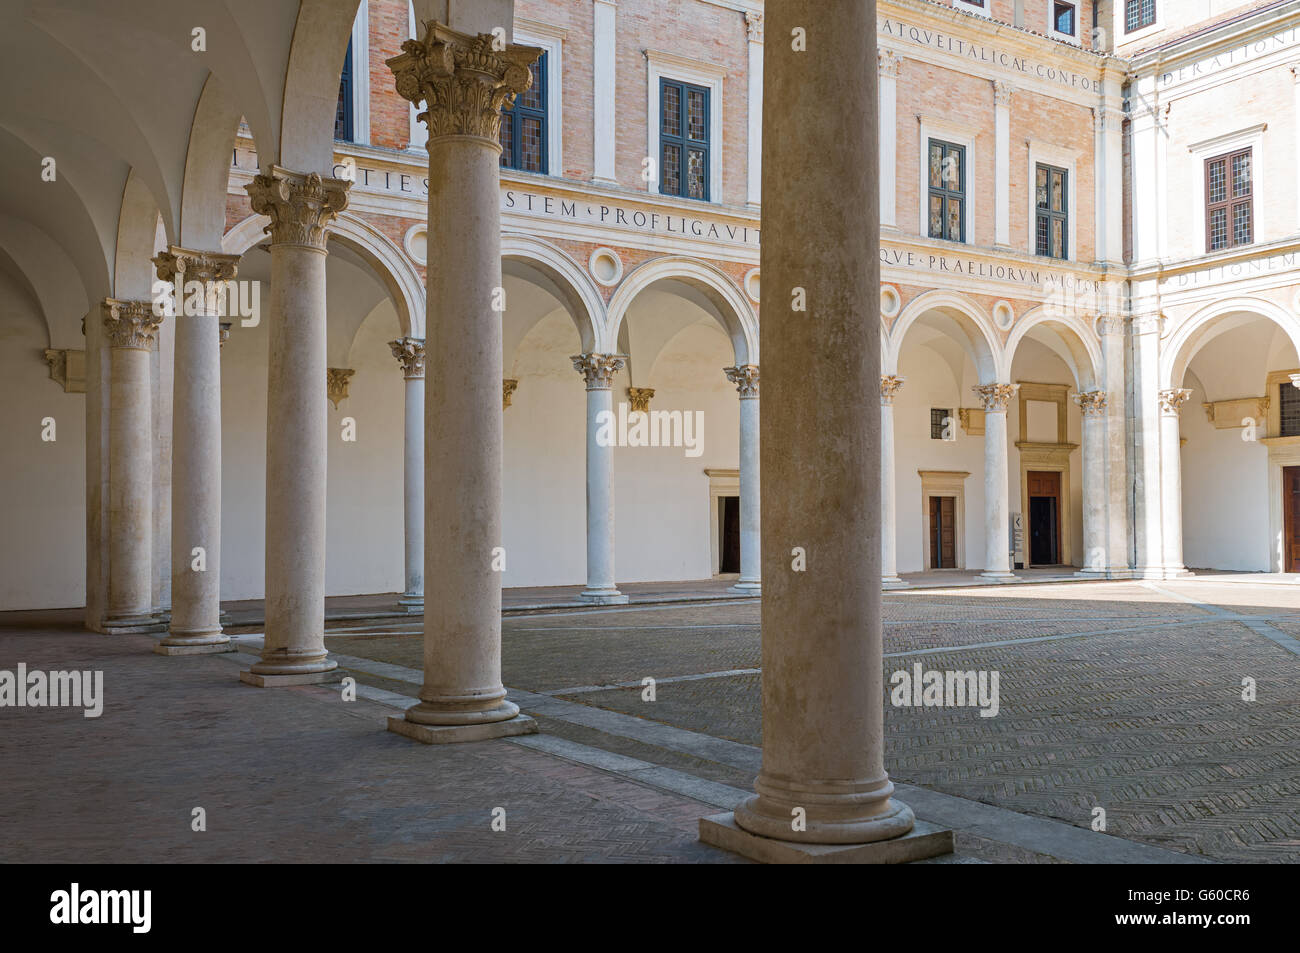 Italy, Marche region, Urbino, the Ducal Palace built by Federico Da Montefeltro, the courtyard Stock Photo